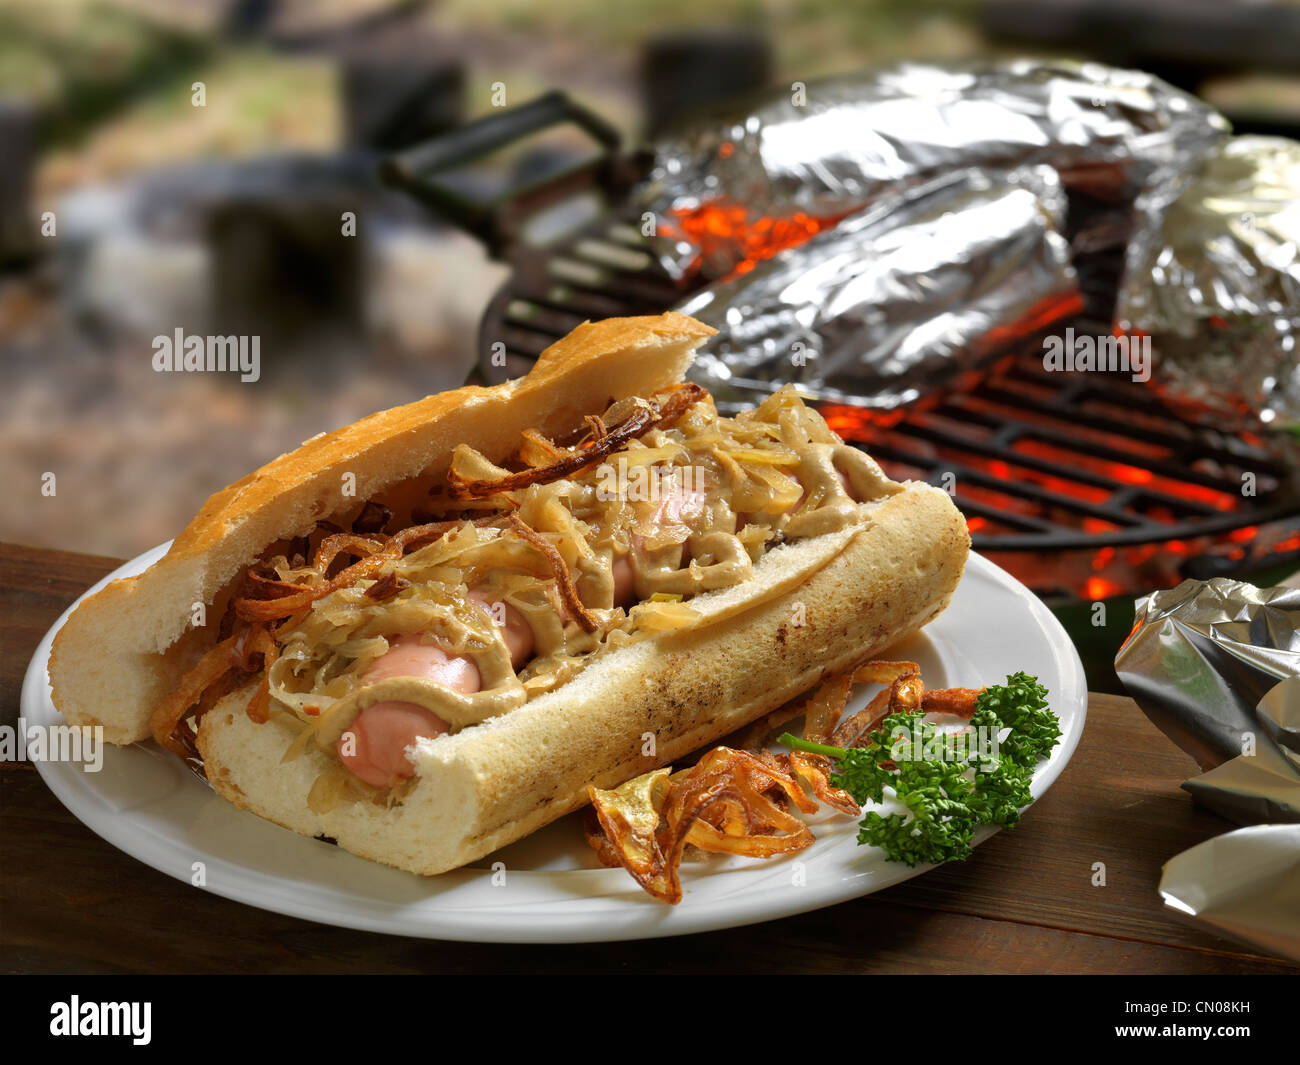 French sandwich - Stock Image